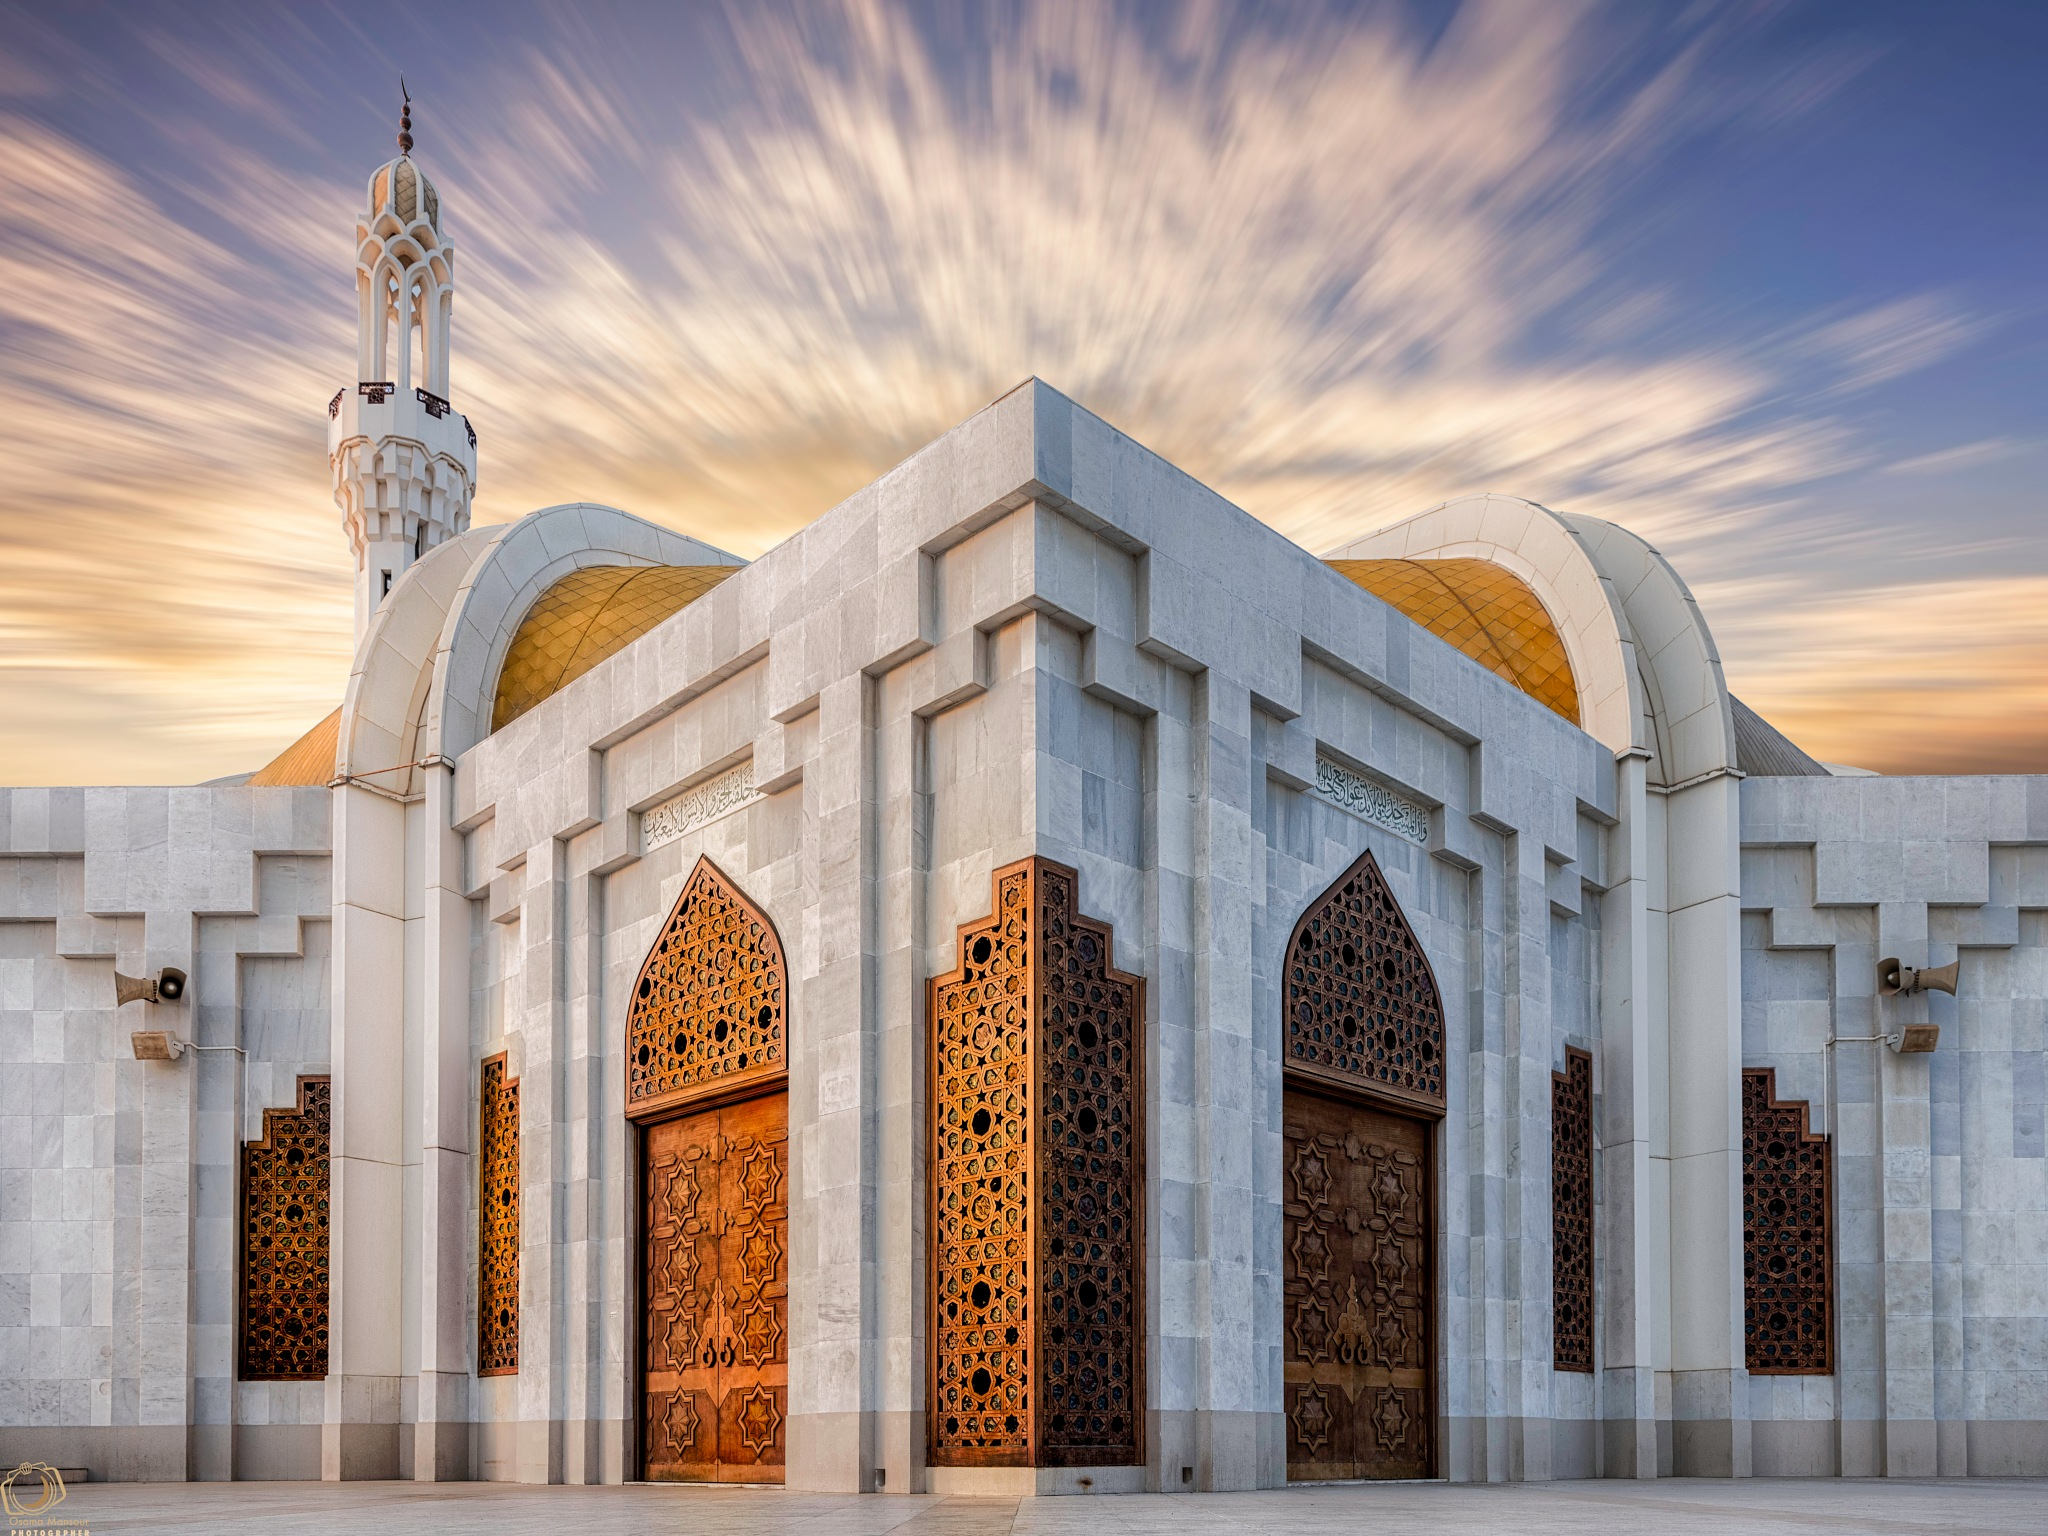 Mosque by Osama Mansour